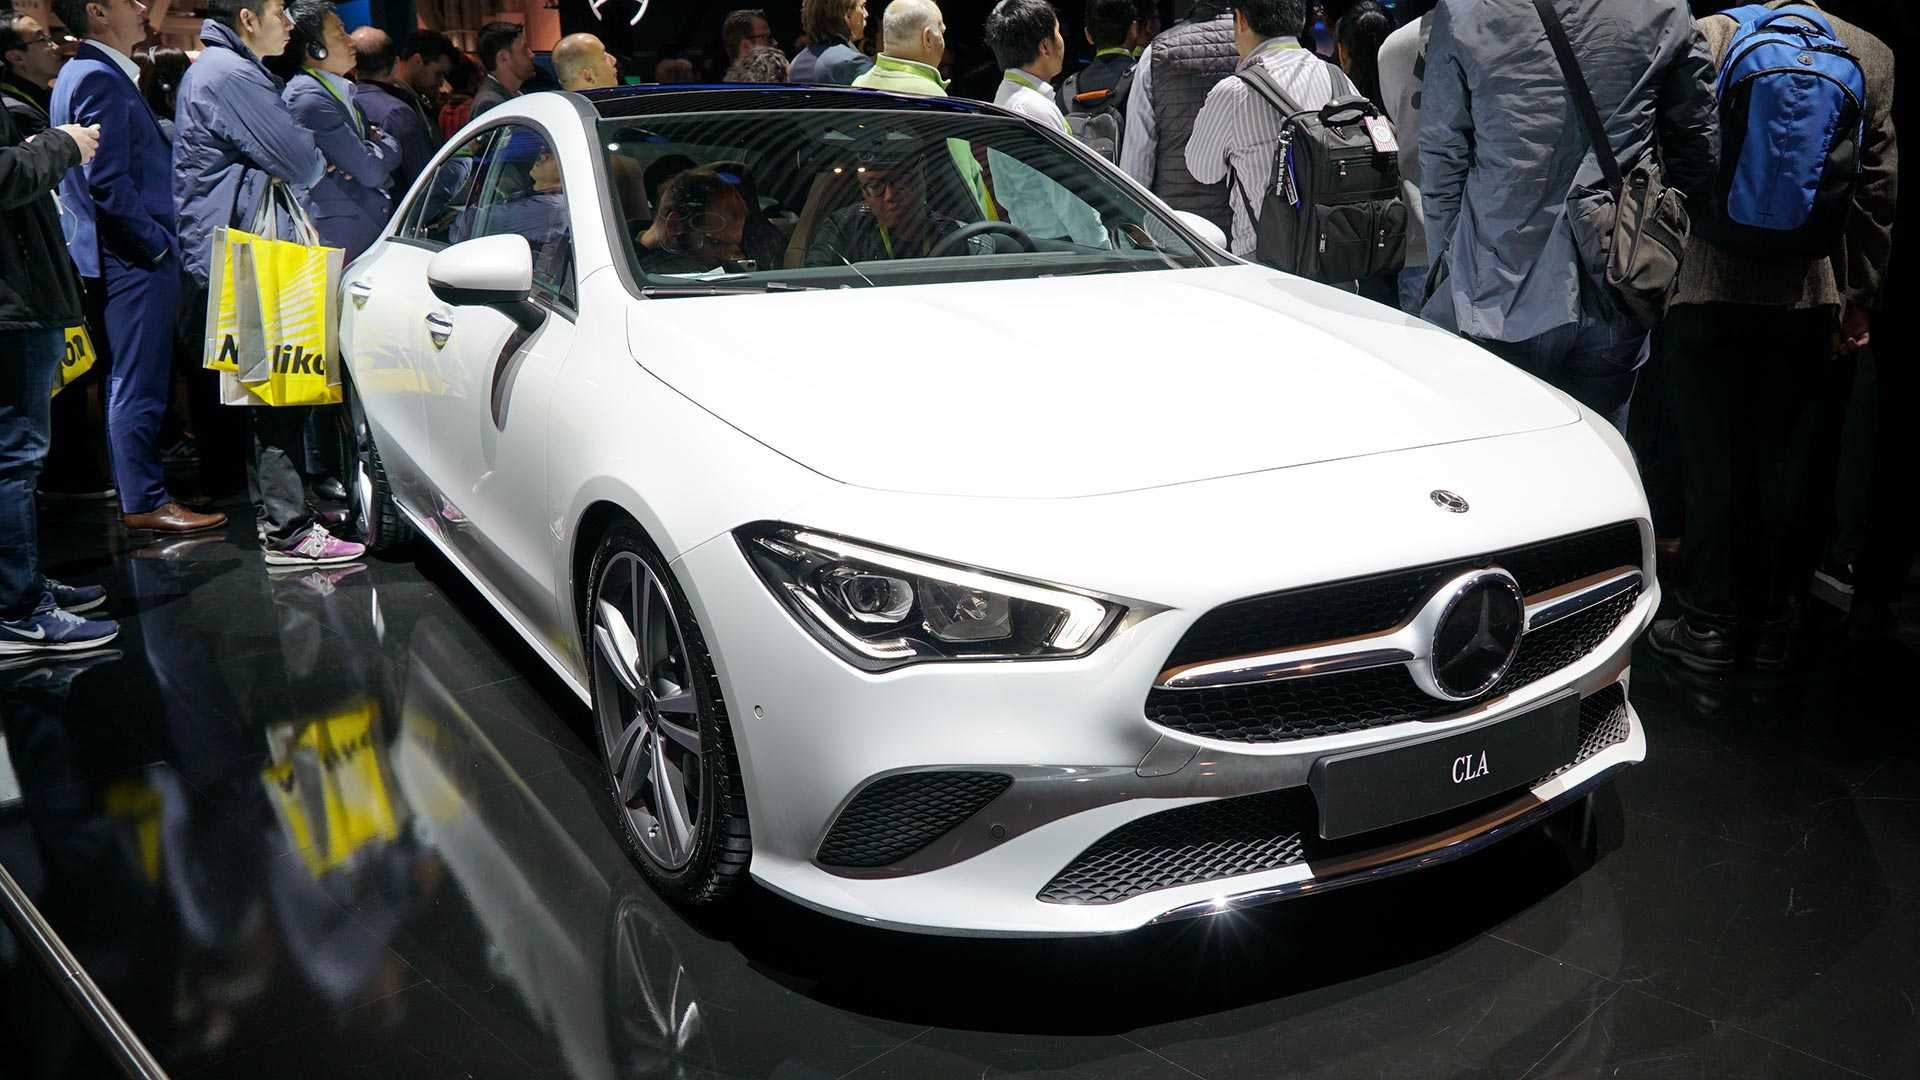 2020 Mercedes Benz CLA Class Motor1com Photos 1920x1080